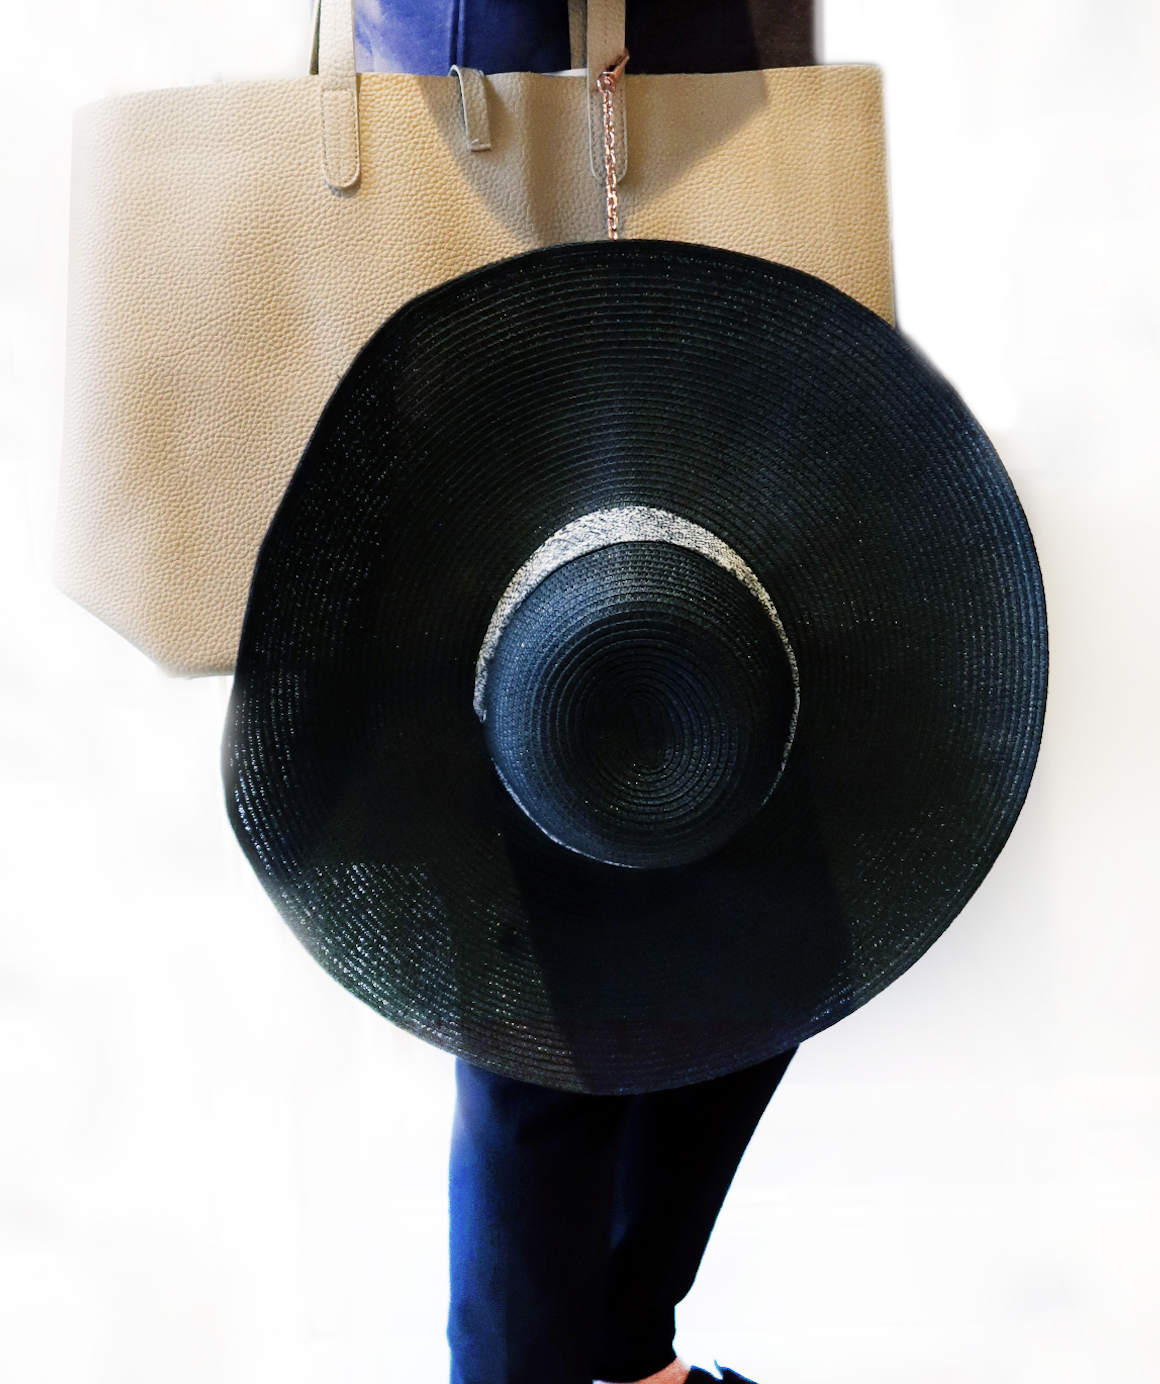 Floppy hat hanging from purse connect by pochette chain strap